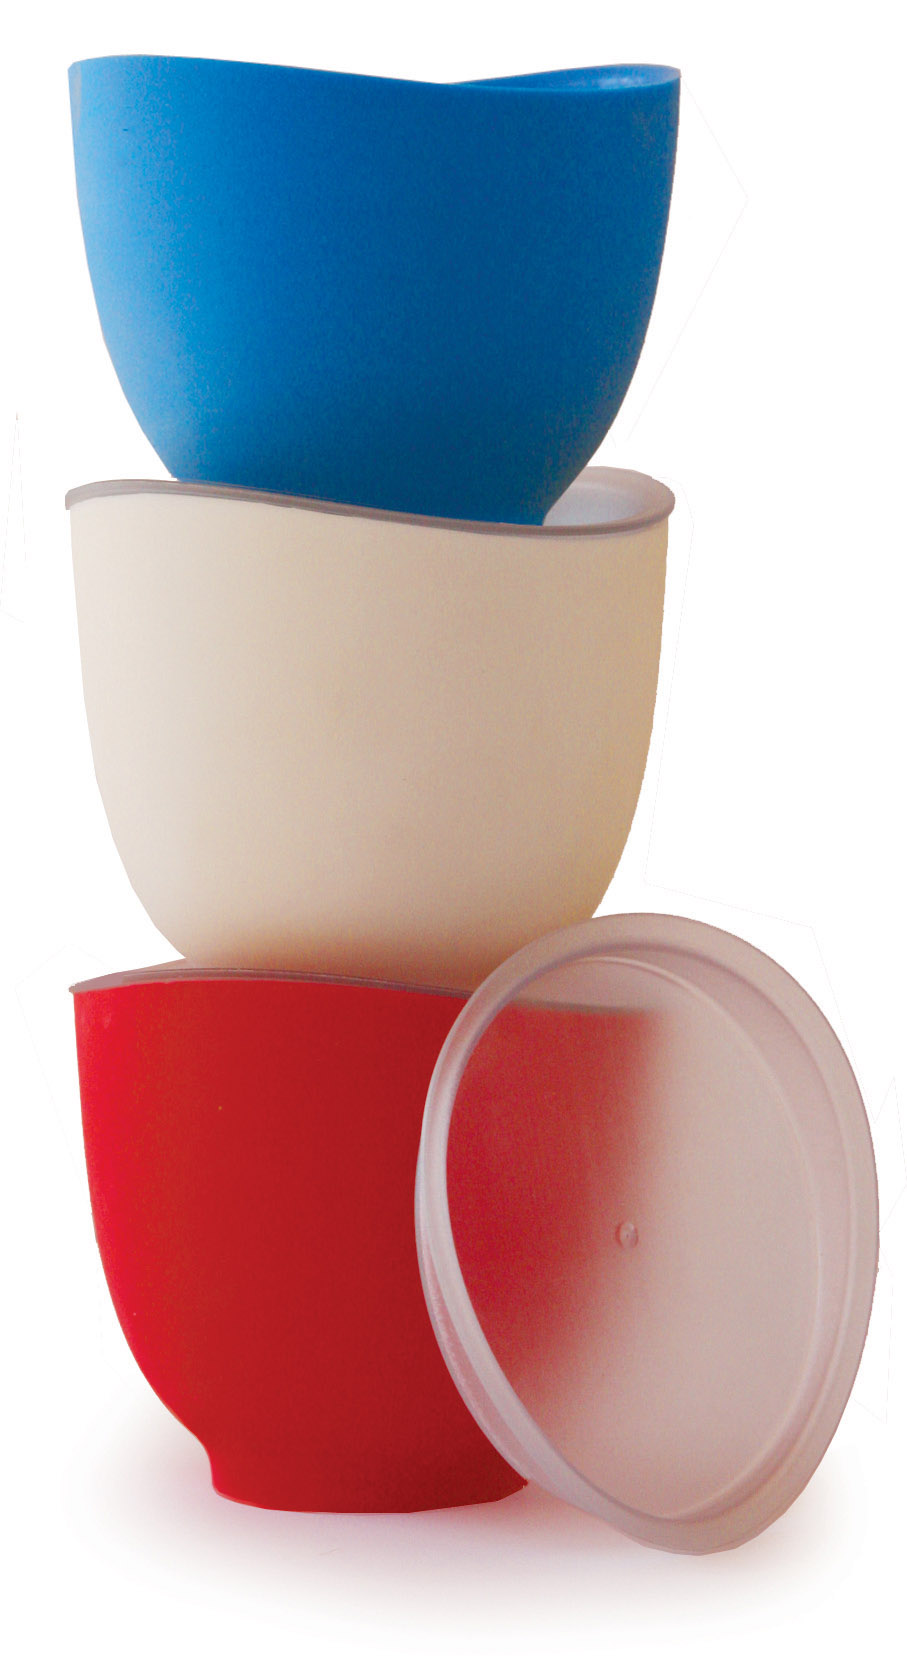 iSi Silicone Prep Bowls Set of 3 with Lids - 1 Cup Each